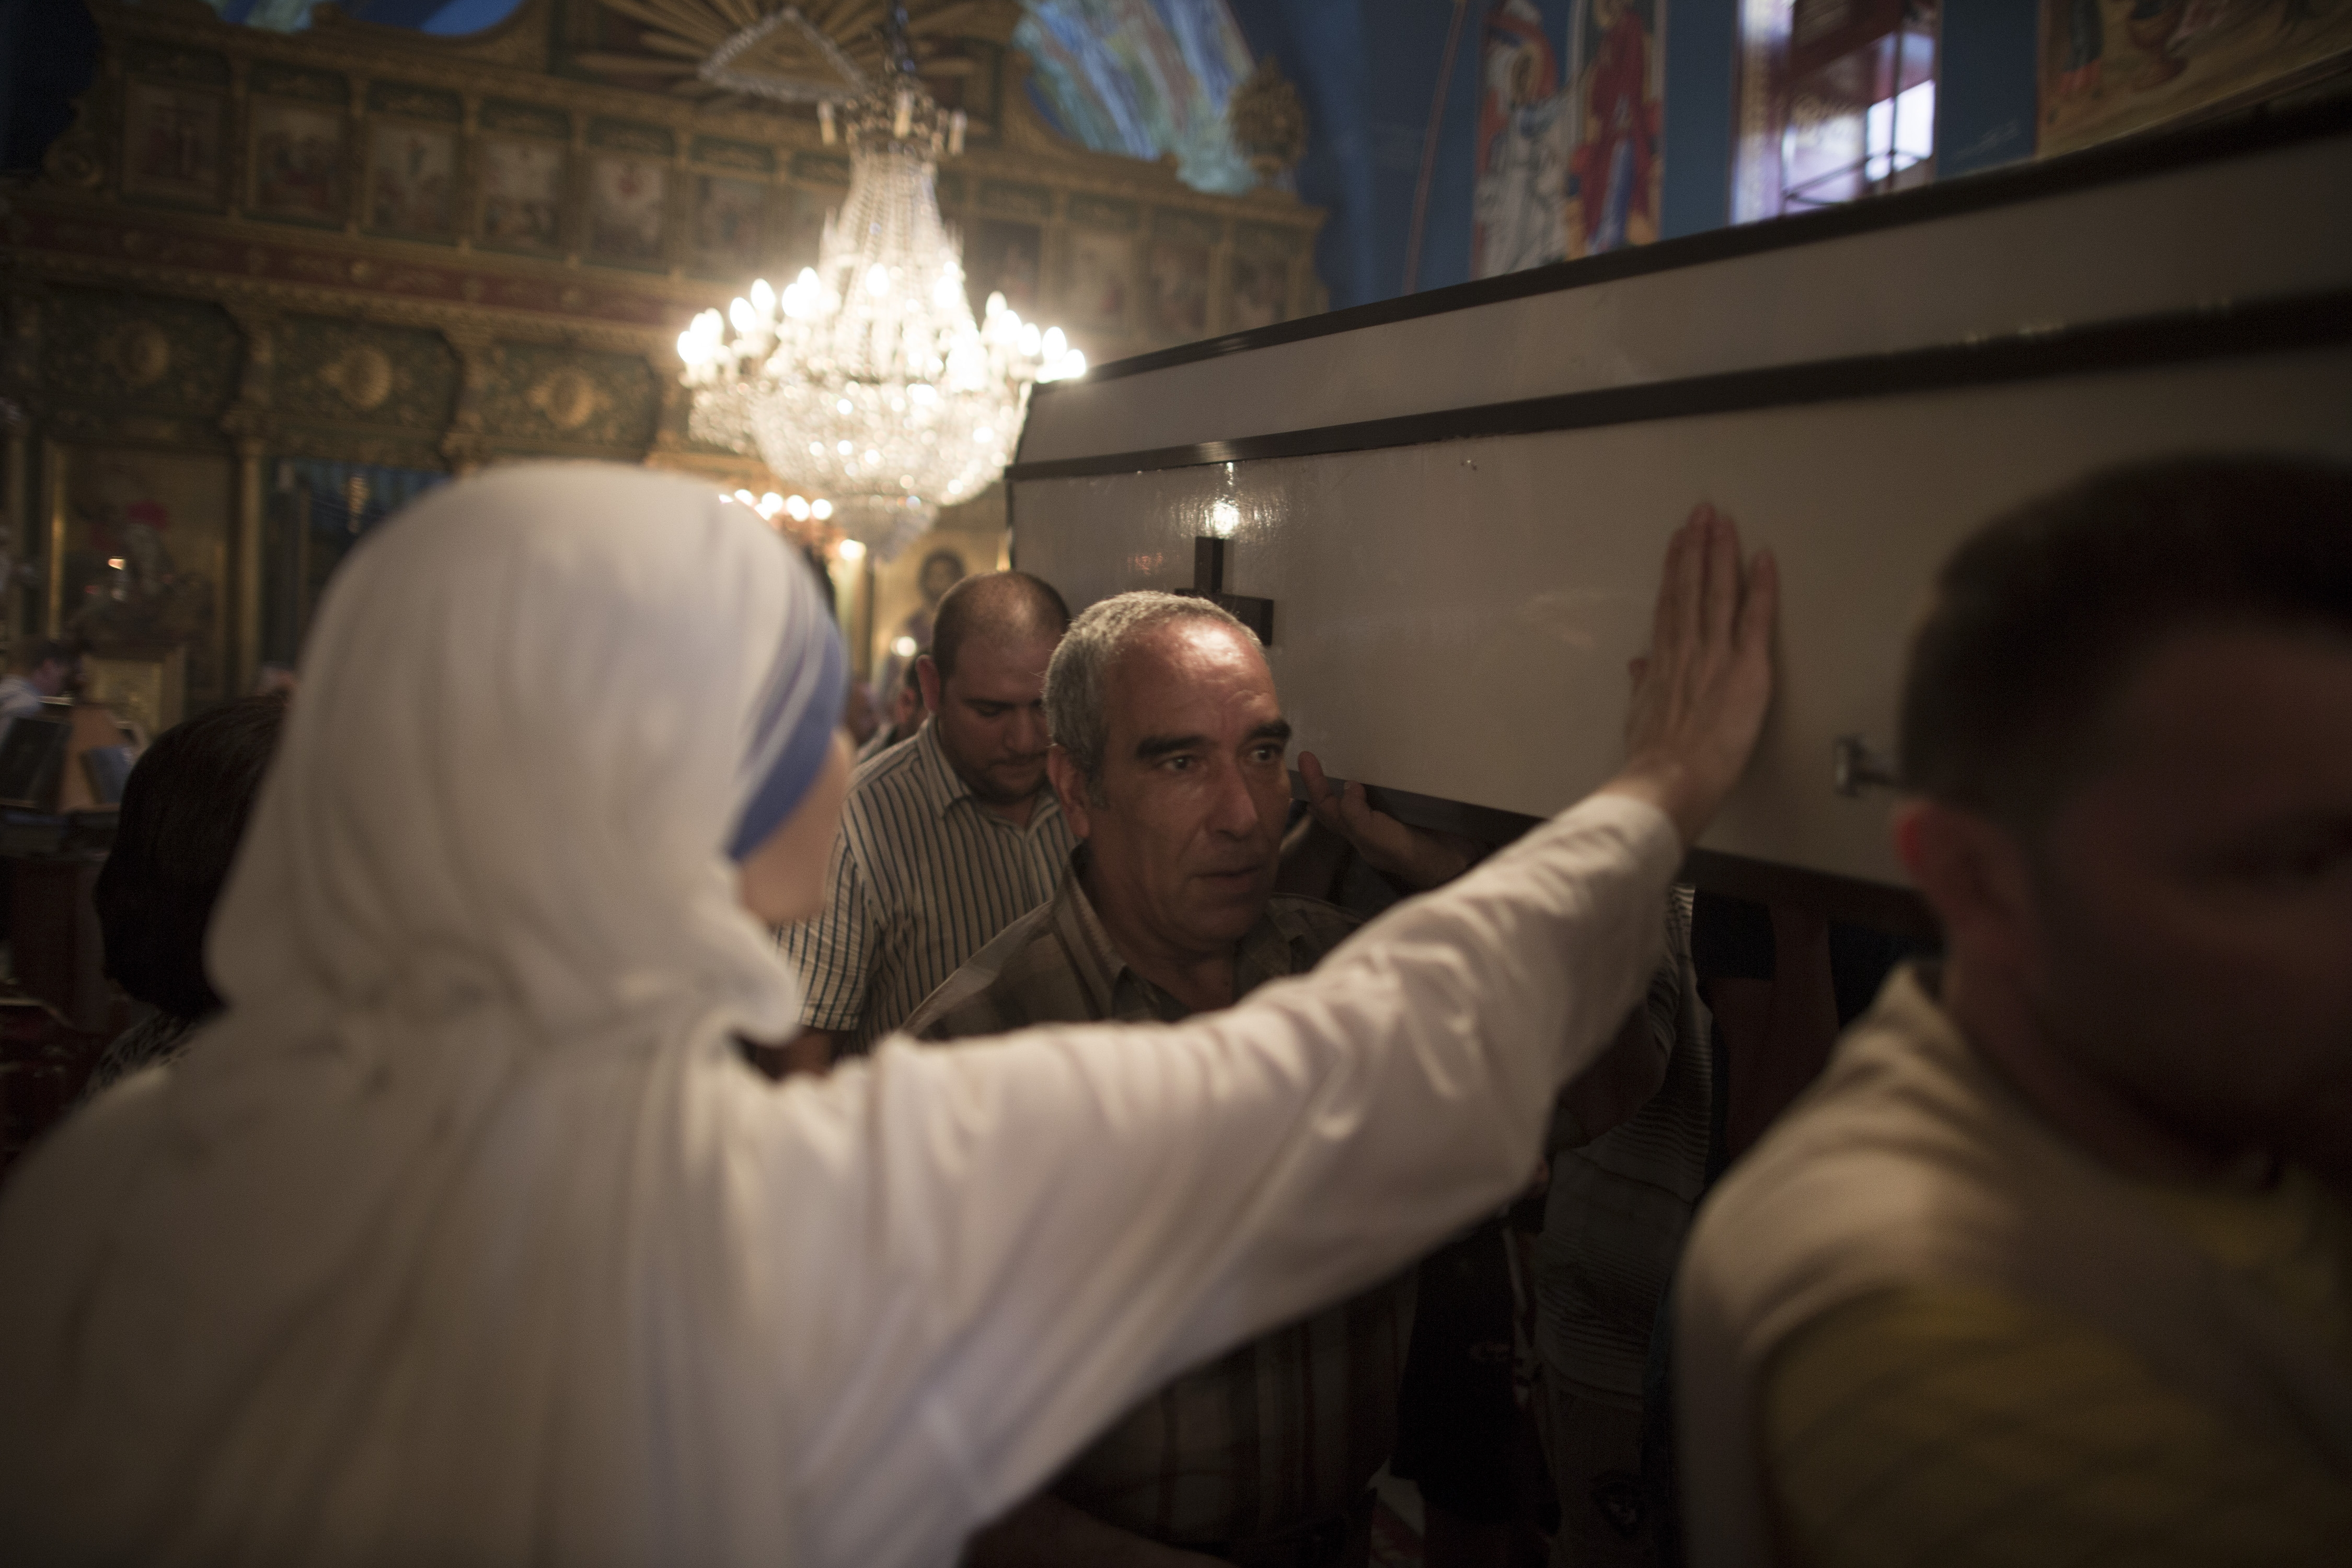 A nun presses her hand to the coffin of Jalila Ayyad, a Christian woman who was killed during an airstrike, at the Church of Saint Porphyrius on Sunday in Gaza City, Gaza Strip. Hamas and Israel went back and forth Sunday over proposals for a humanitarian lull in the Gaza fighting, which has killed more than 1,000 Palestinians and displaced about 200,000.